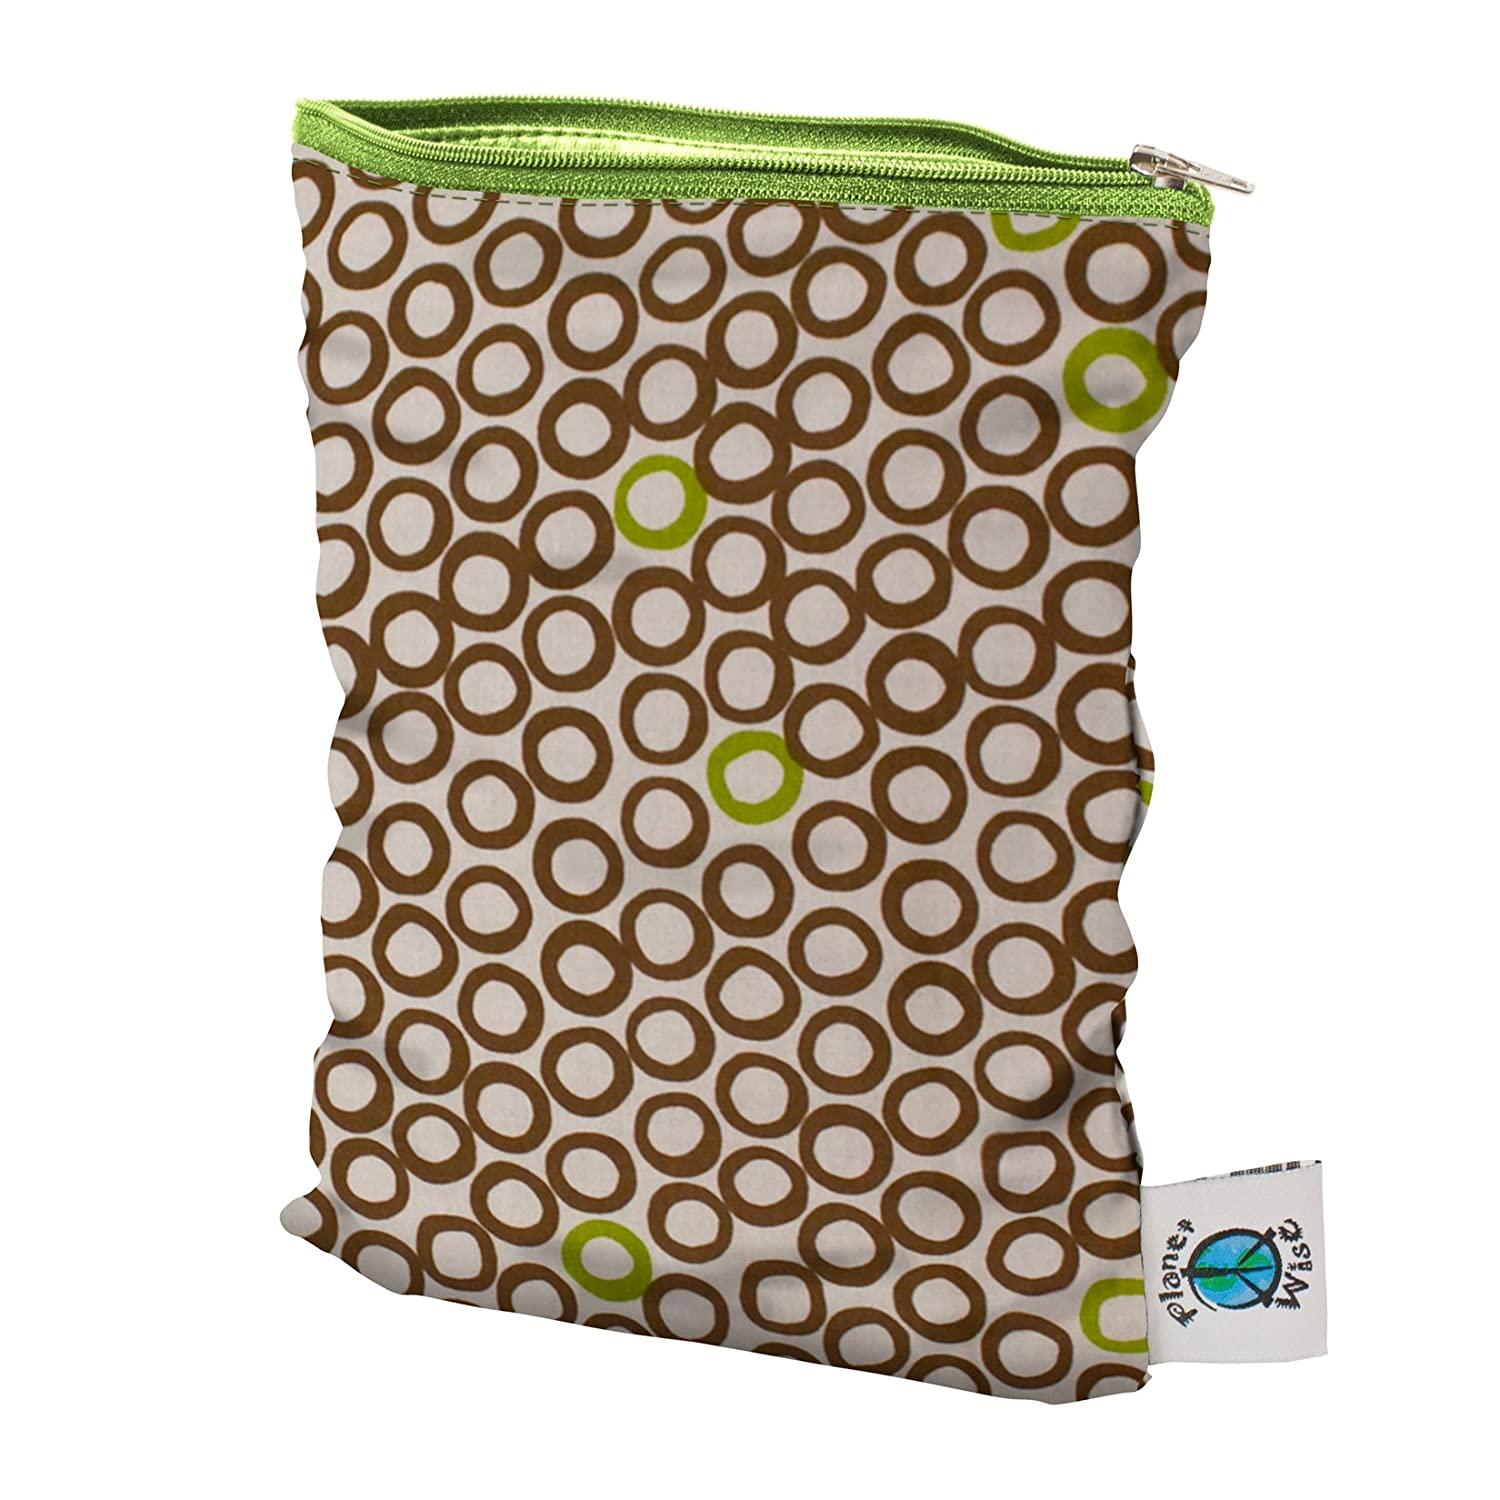 Planet Wise Wet Diaper Bag, Jewel Woods, Medium Planet Wise Inc. PWWBMDJewelWood